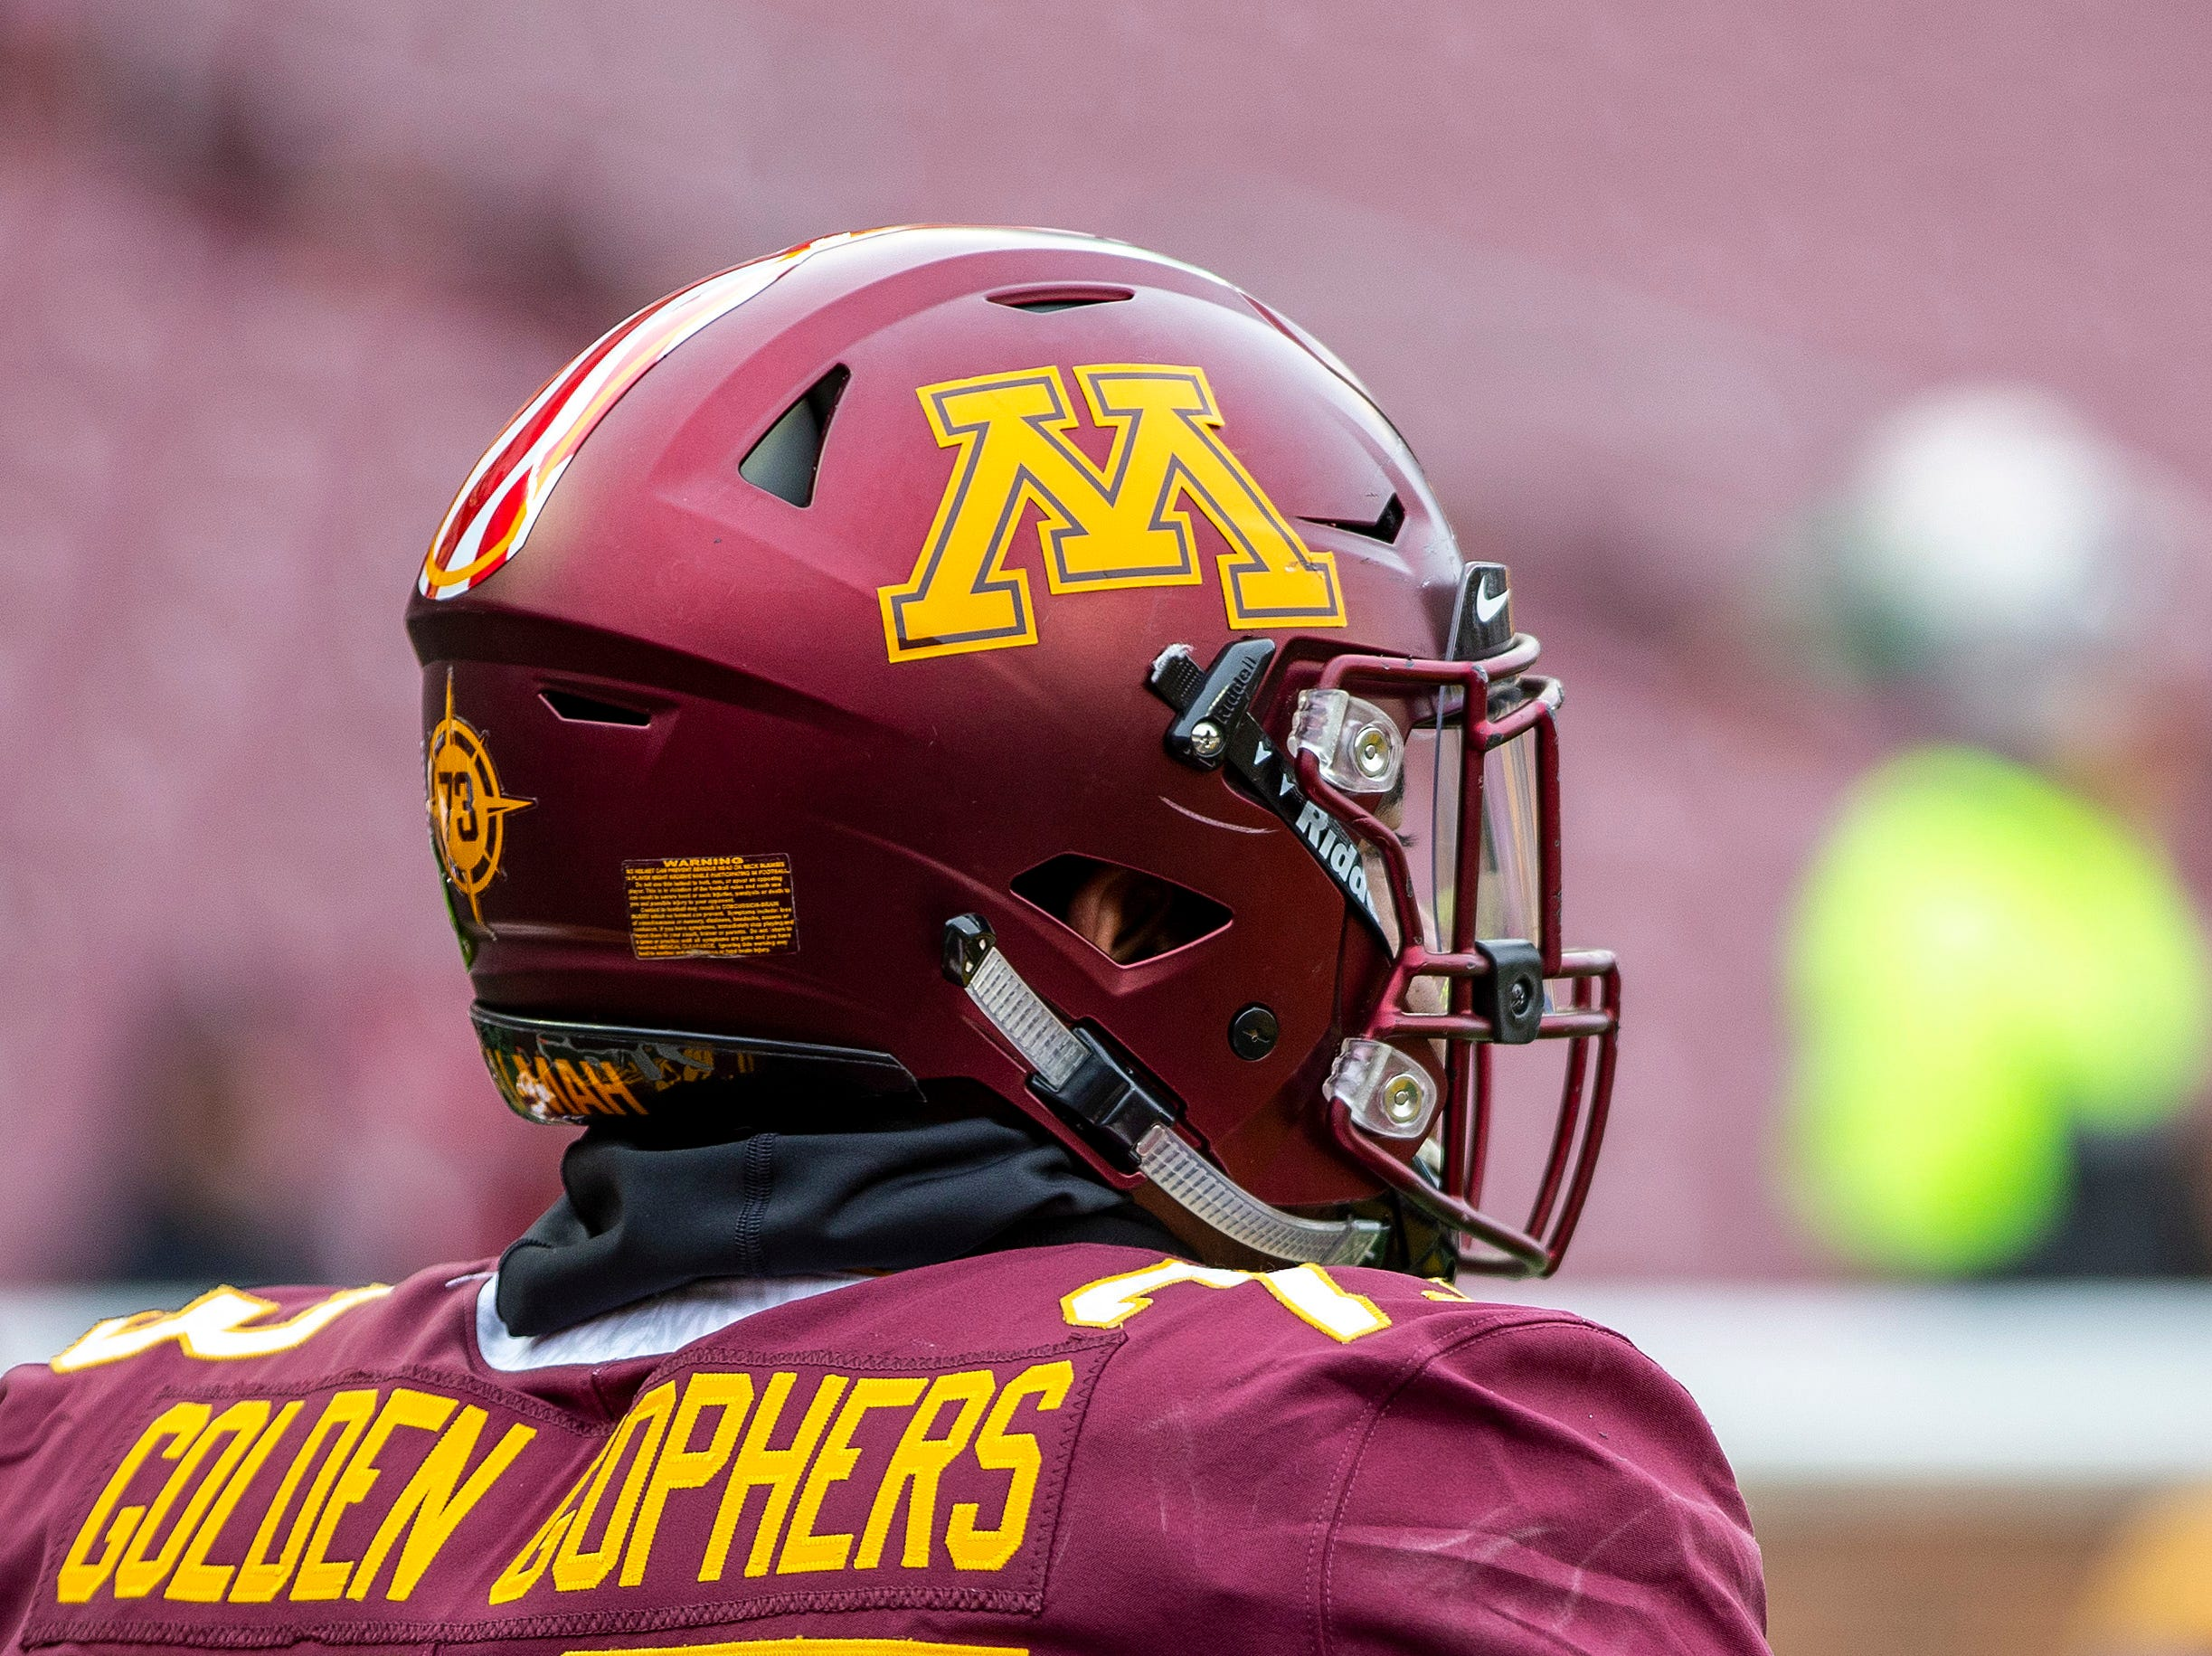 Nov 10, 2018; Minneapolis, MN, USA; A general view of a Minnesota Golden Gophers helmets before a game against the Purdue Boilermakers at TCF Bank Stadium. Mandatory Credit: Jesse Johnson-USA TODAY Sports